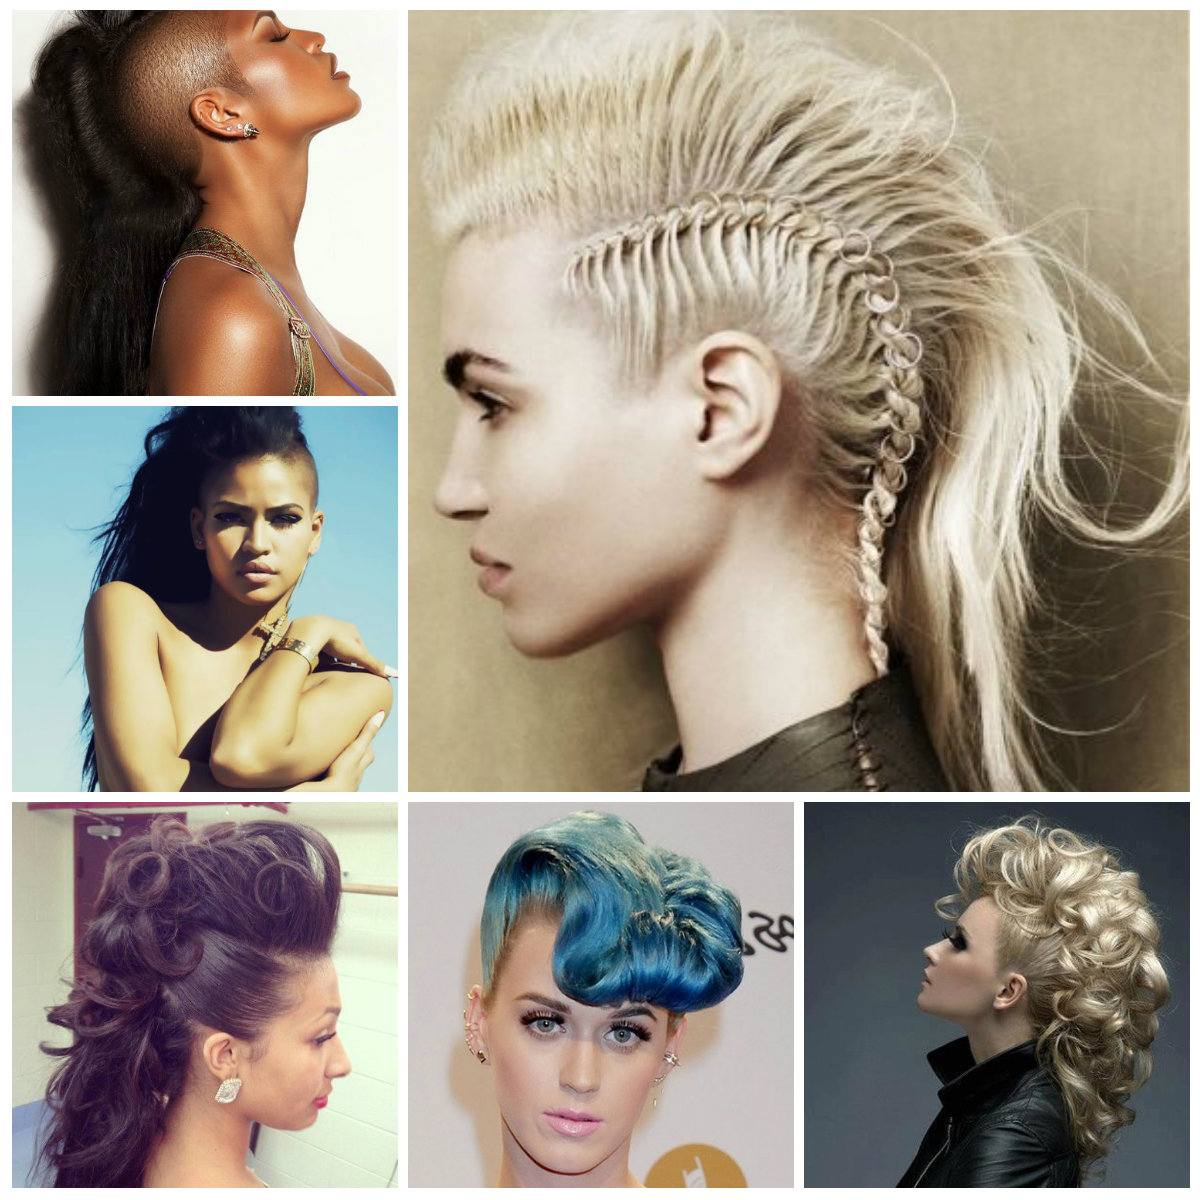 Mohawk Hairstyle For Long Hair – Trendy Hairstyles 2019 For Long Within Well Known Extravagant Purple Mohawk Hairstyles (View 10 of 20)